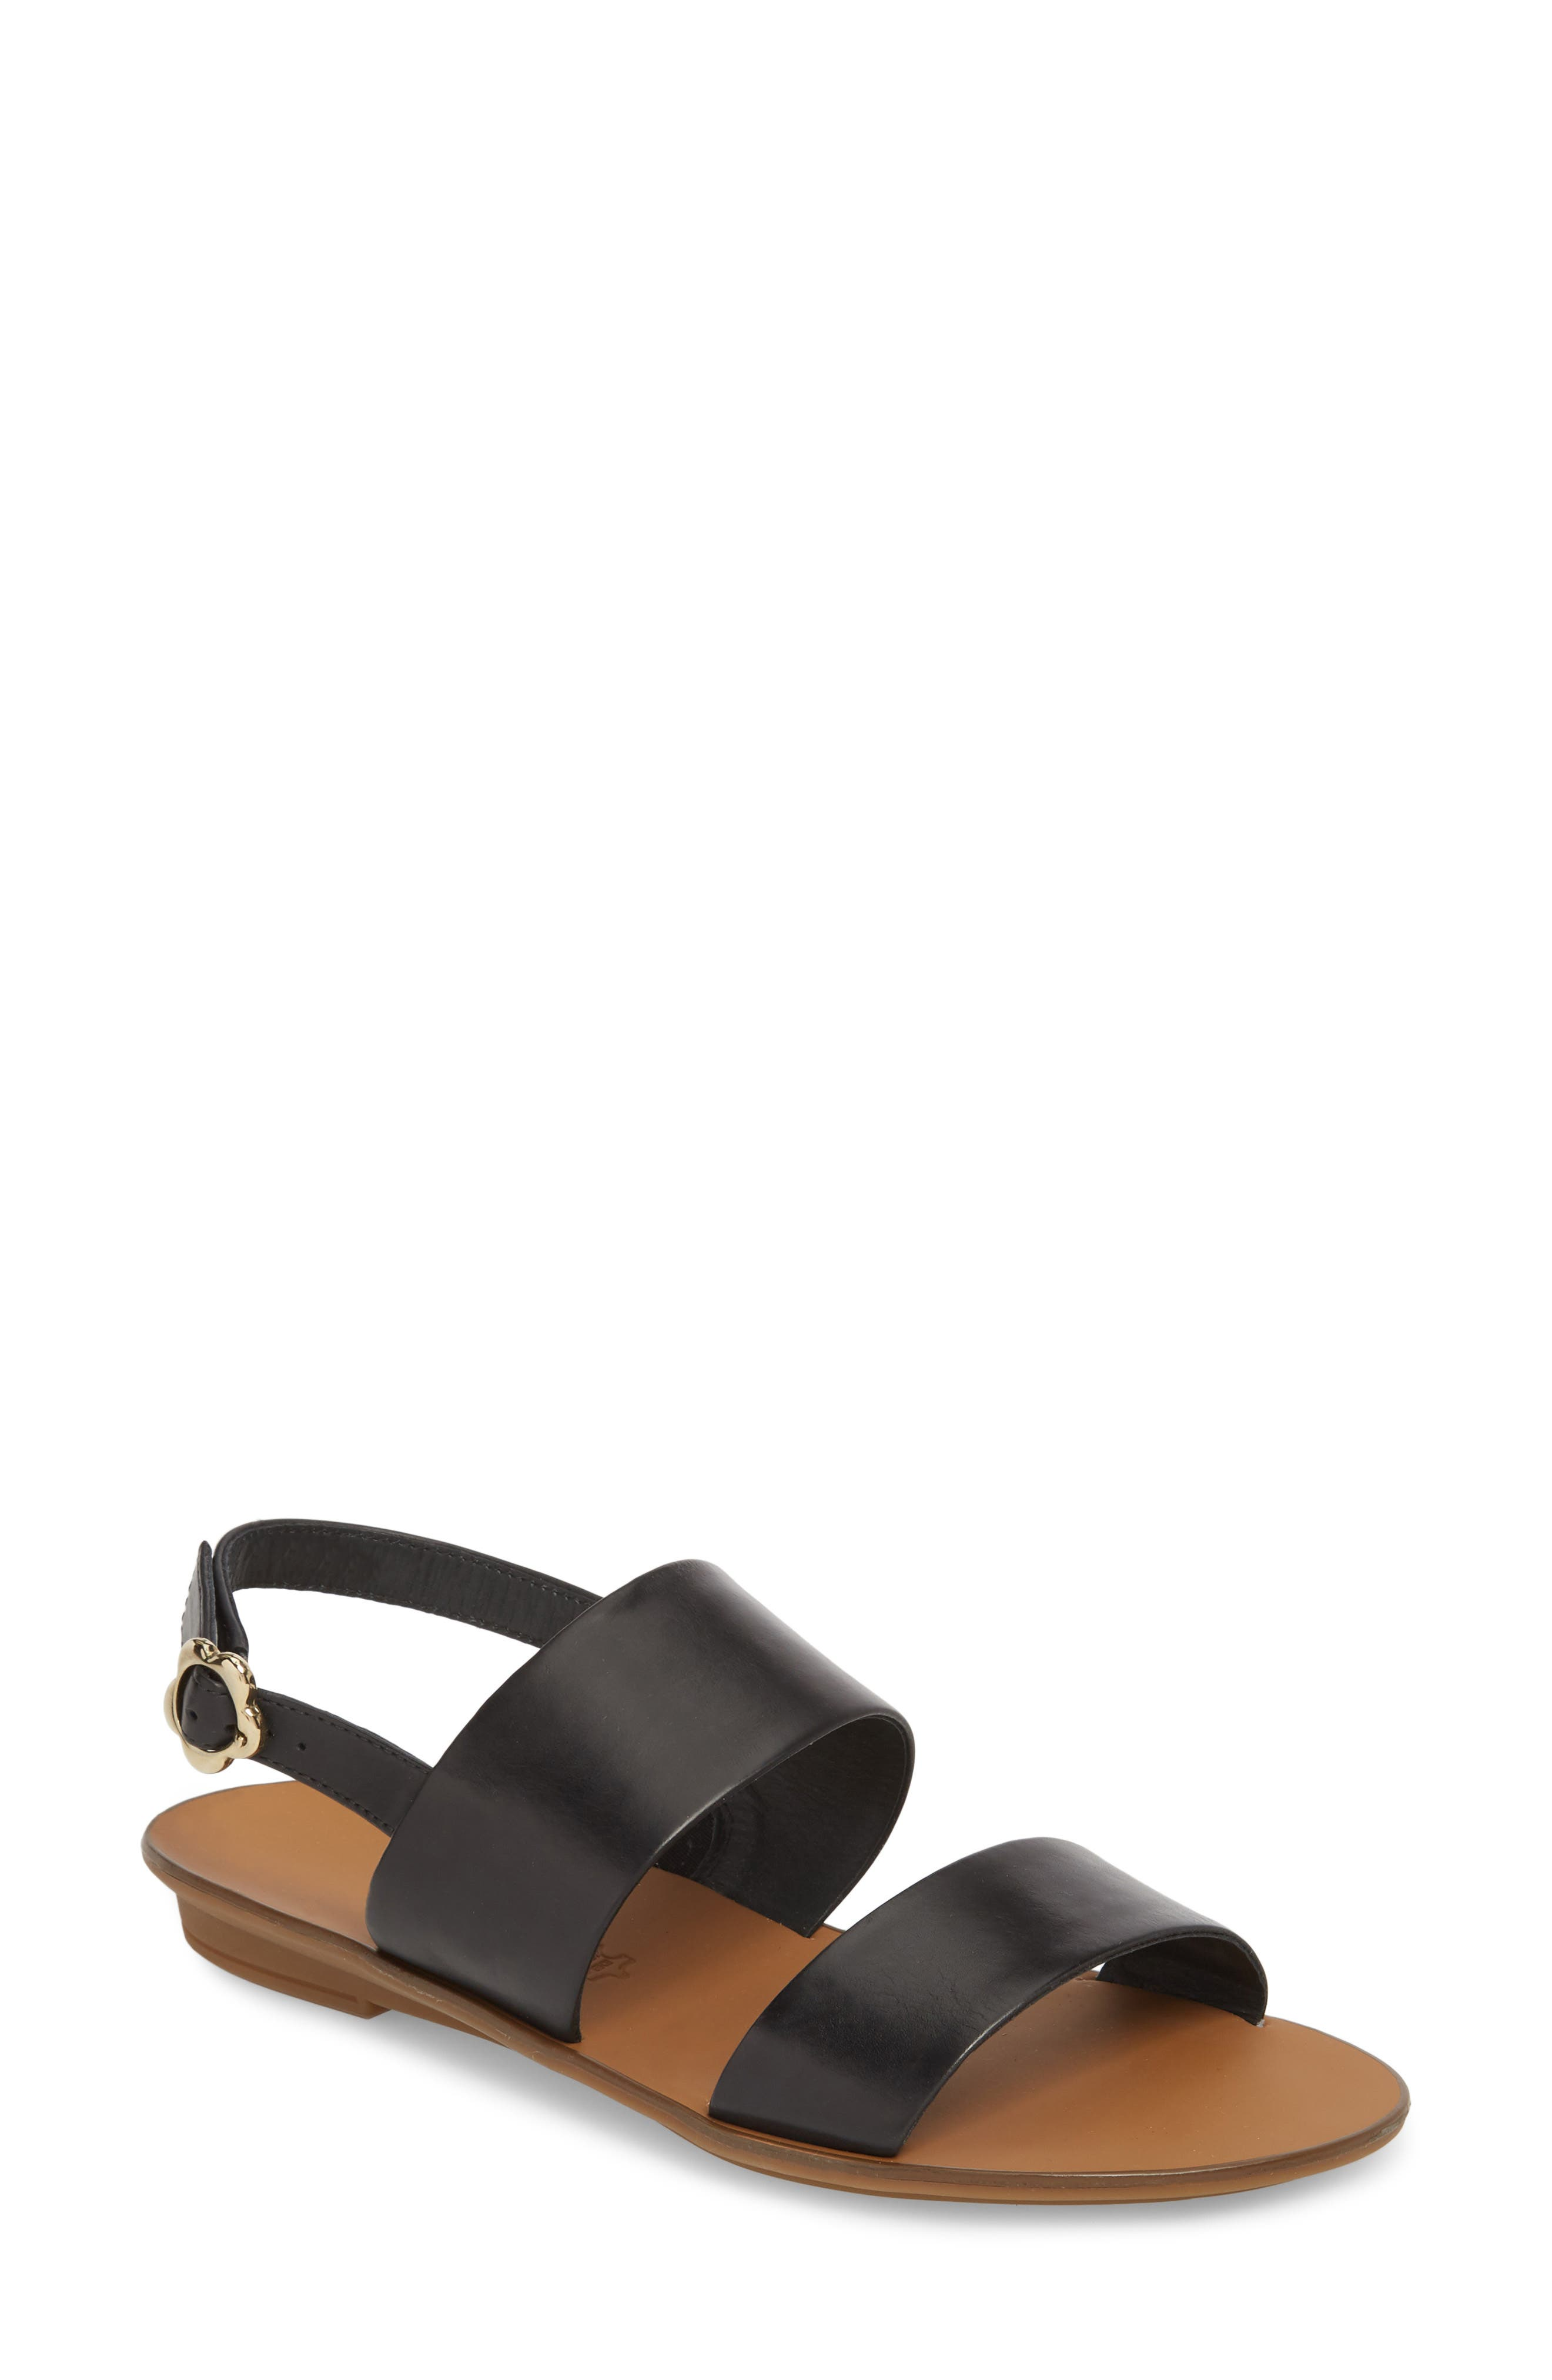 Alternate Image 1 Selected - Paul Green Sahara Slingback Flat (Women)